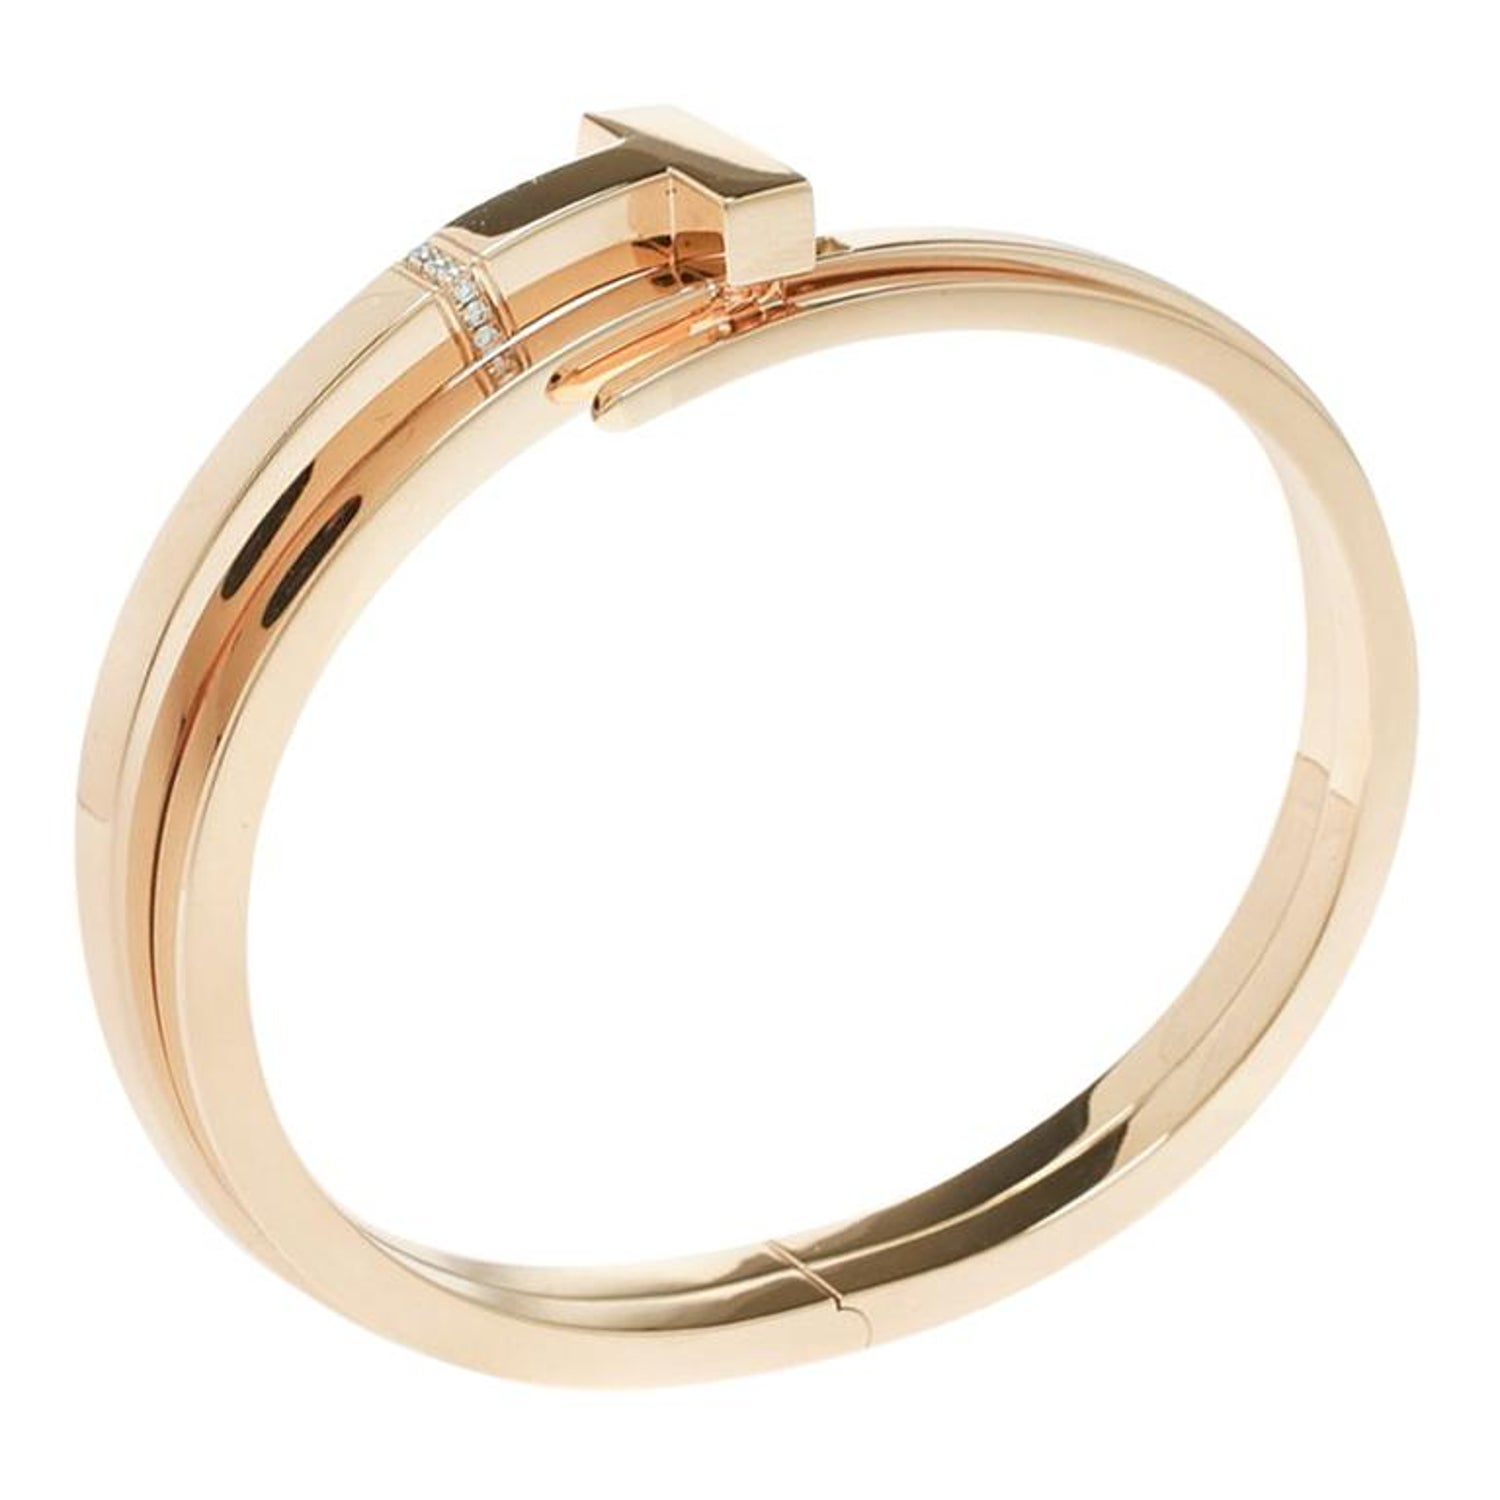 3b01809c2 Tiffany and Co. Tiffany T Square Wrap Diamond and 18k Rose Gold Cuff  Bracelet For Sale at 1stdibs